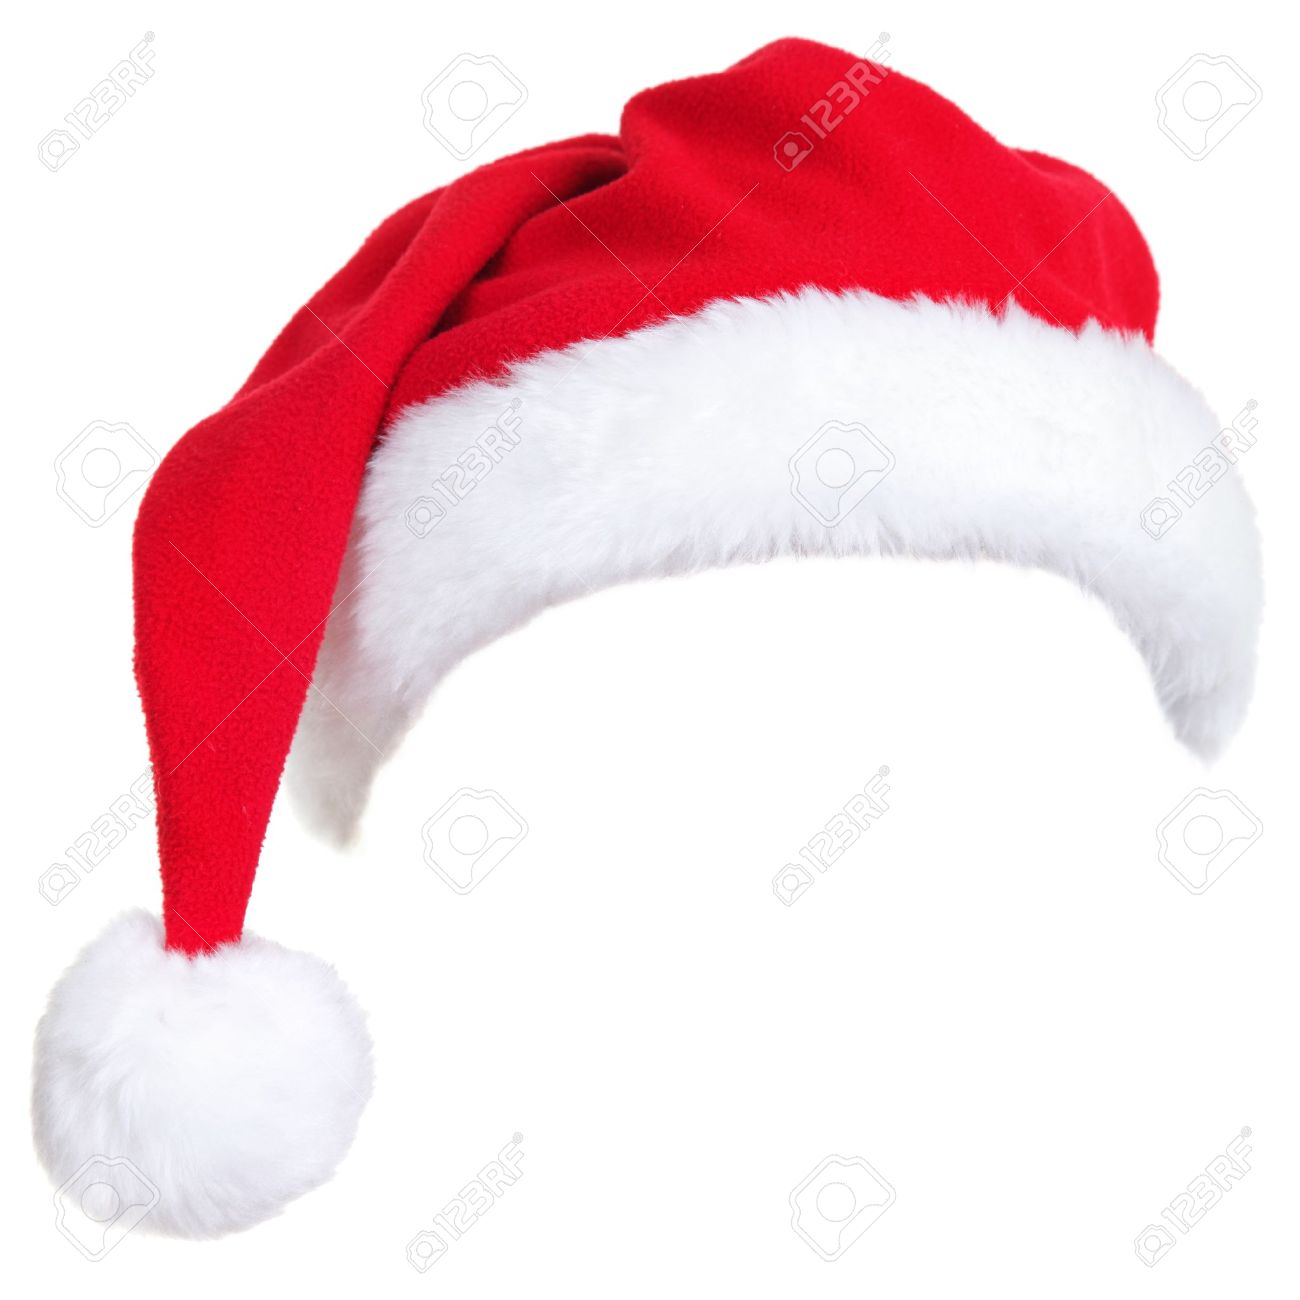 76e345d119be4 Christmas santa hat isolated on white background. designed to easily put on  persons head.